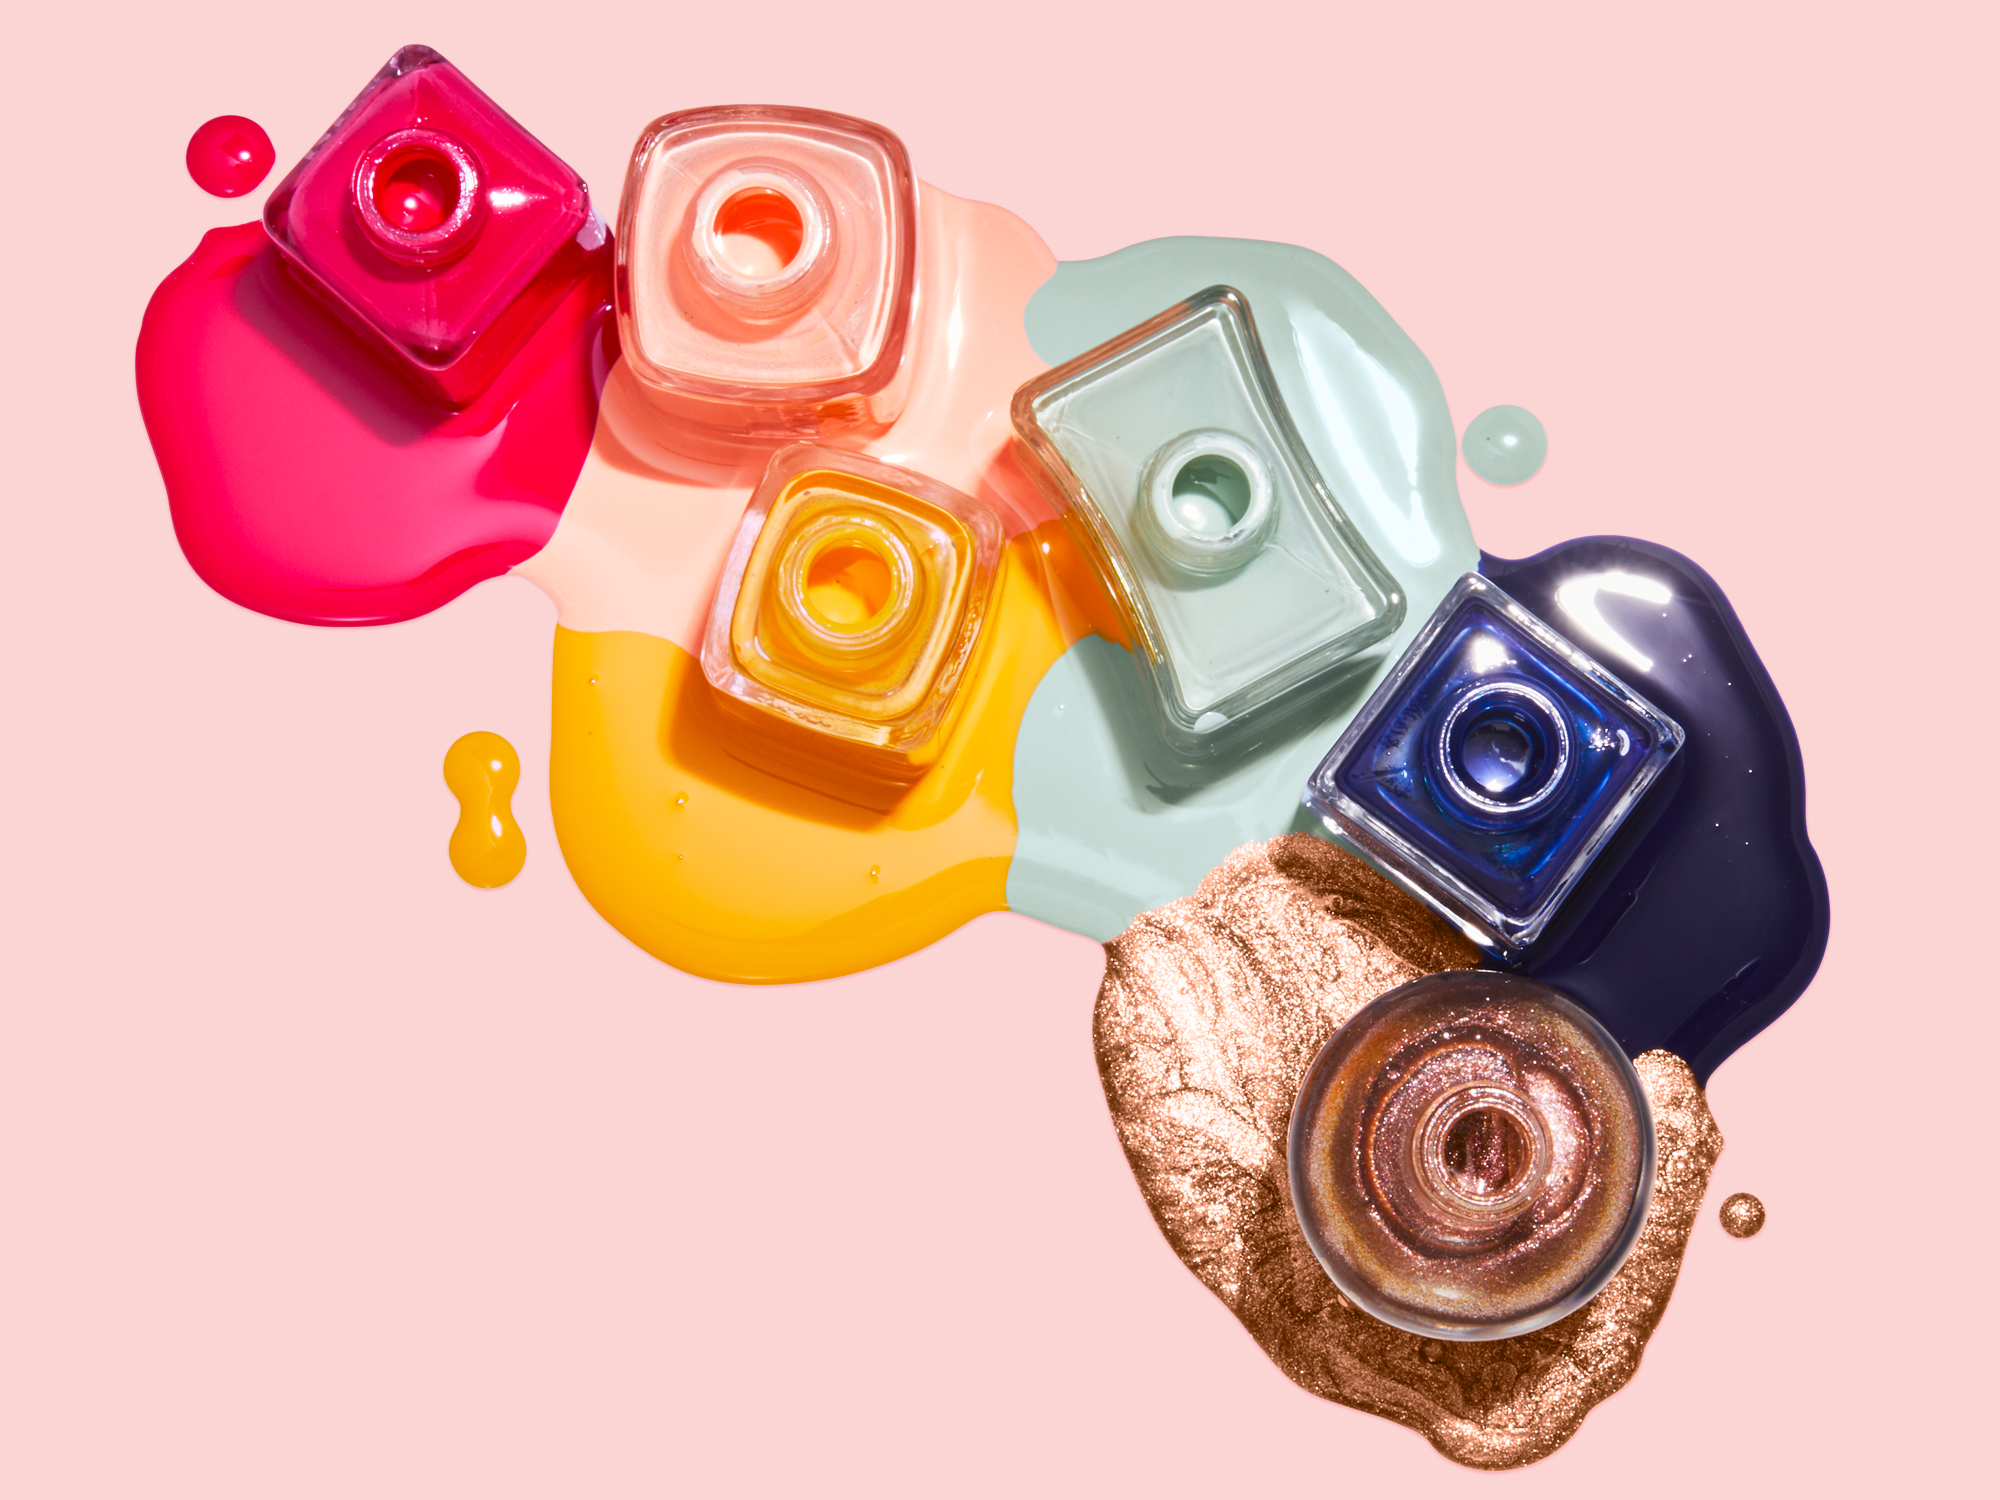 a04951126d 9 Best Summer Nail Colors 2019 - Summer Nail Polish Color Trends to Try